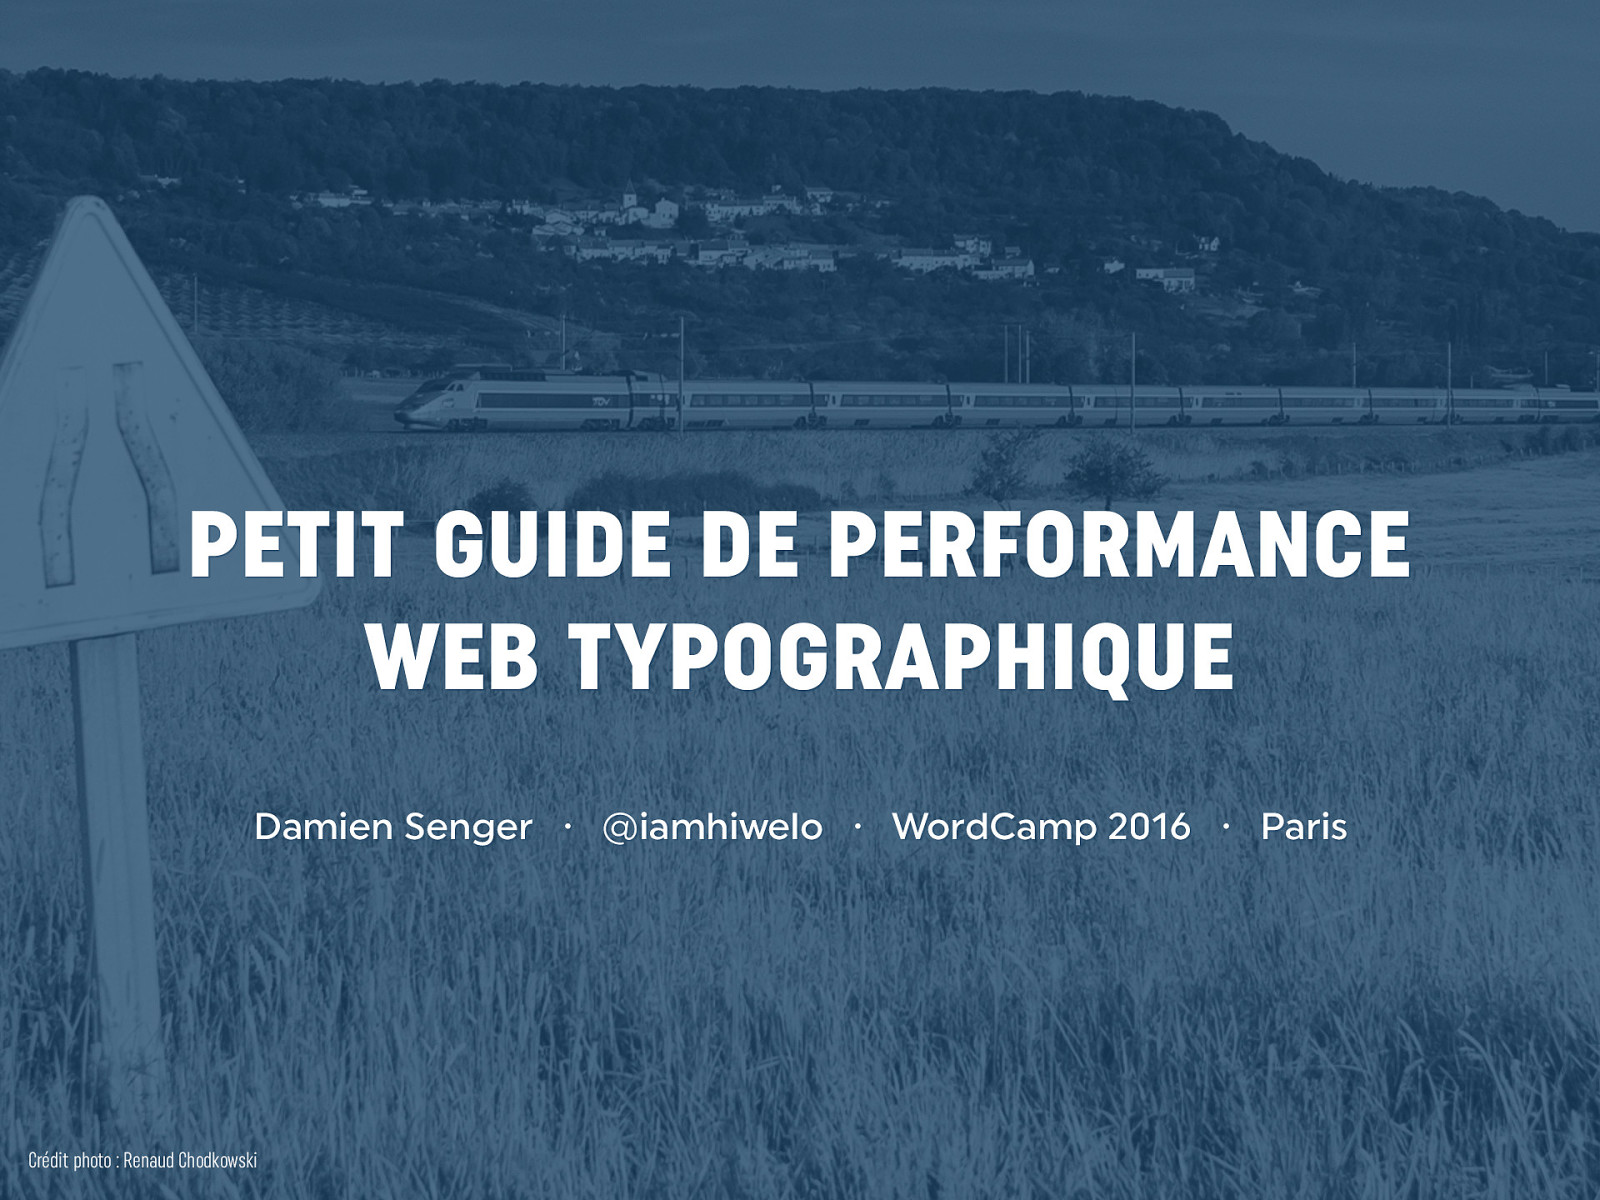 Petit guide de performance web typographique